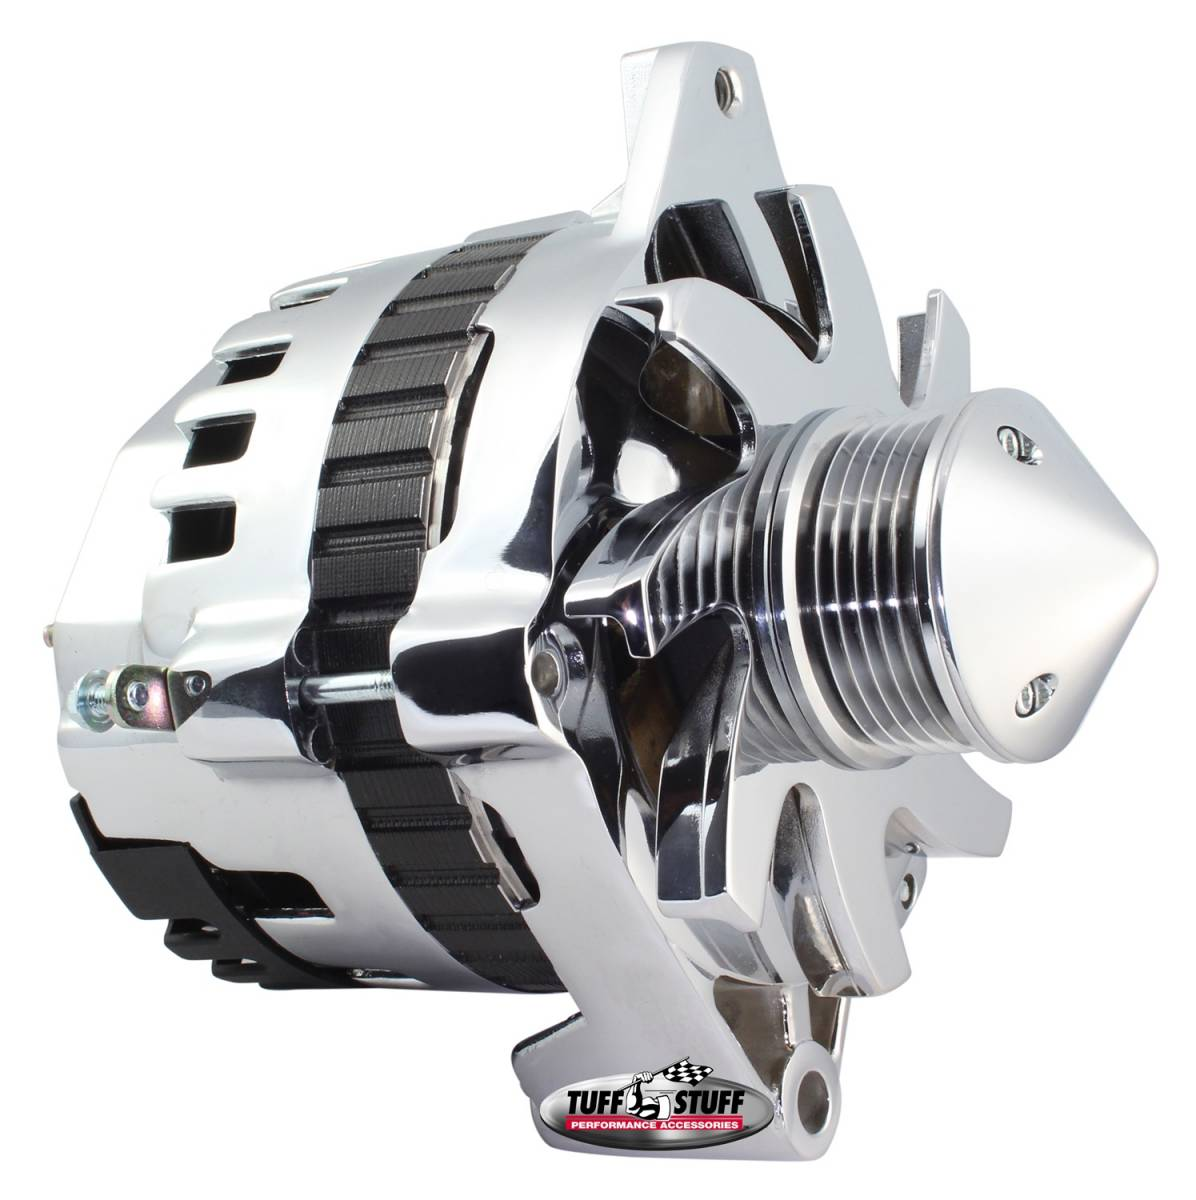 Tuff Stuff Performance - Bullet Alternator 160 AMP 1 Wire Or OEM Hookup 6 Groove Pulley Double Wide Heavy Duty Ball Bearings Polished 7935FP6G22